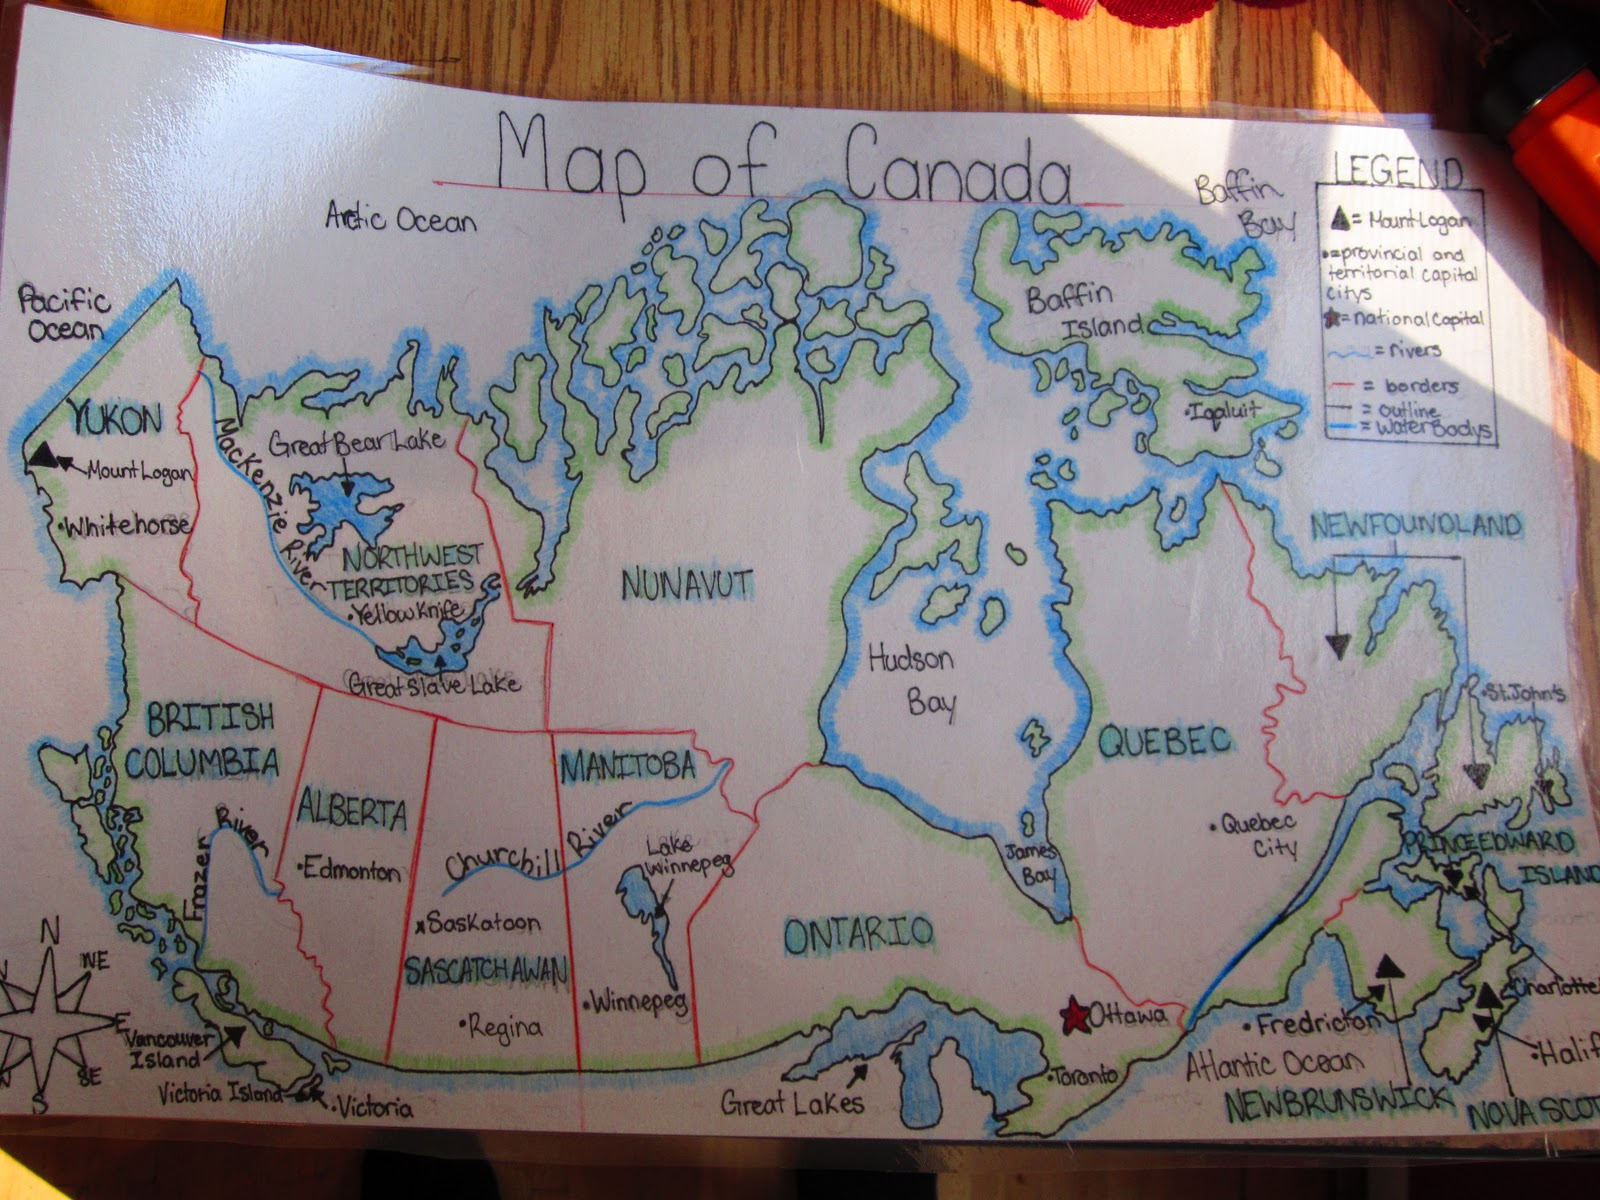 map of canadian provinces Full HD